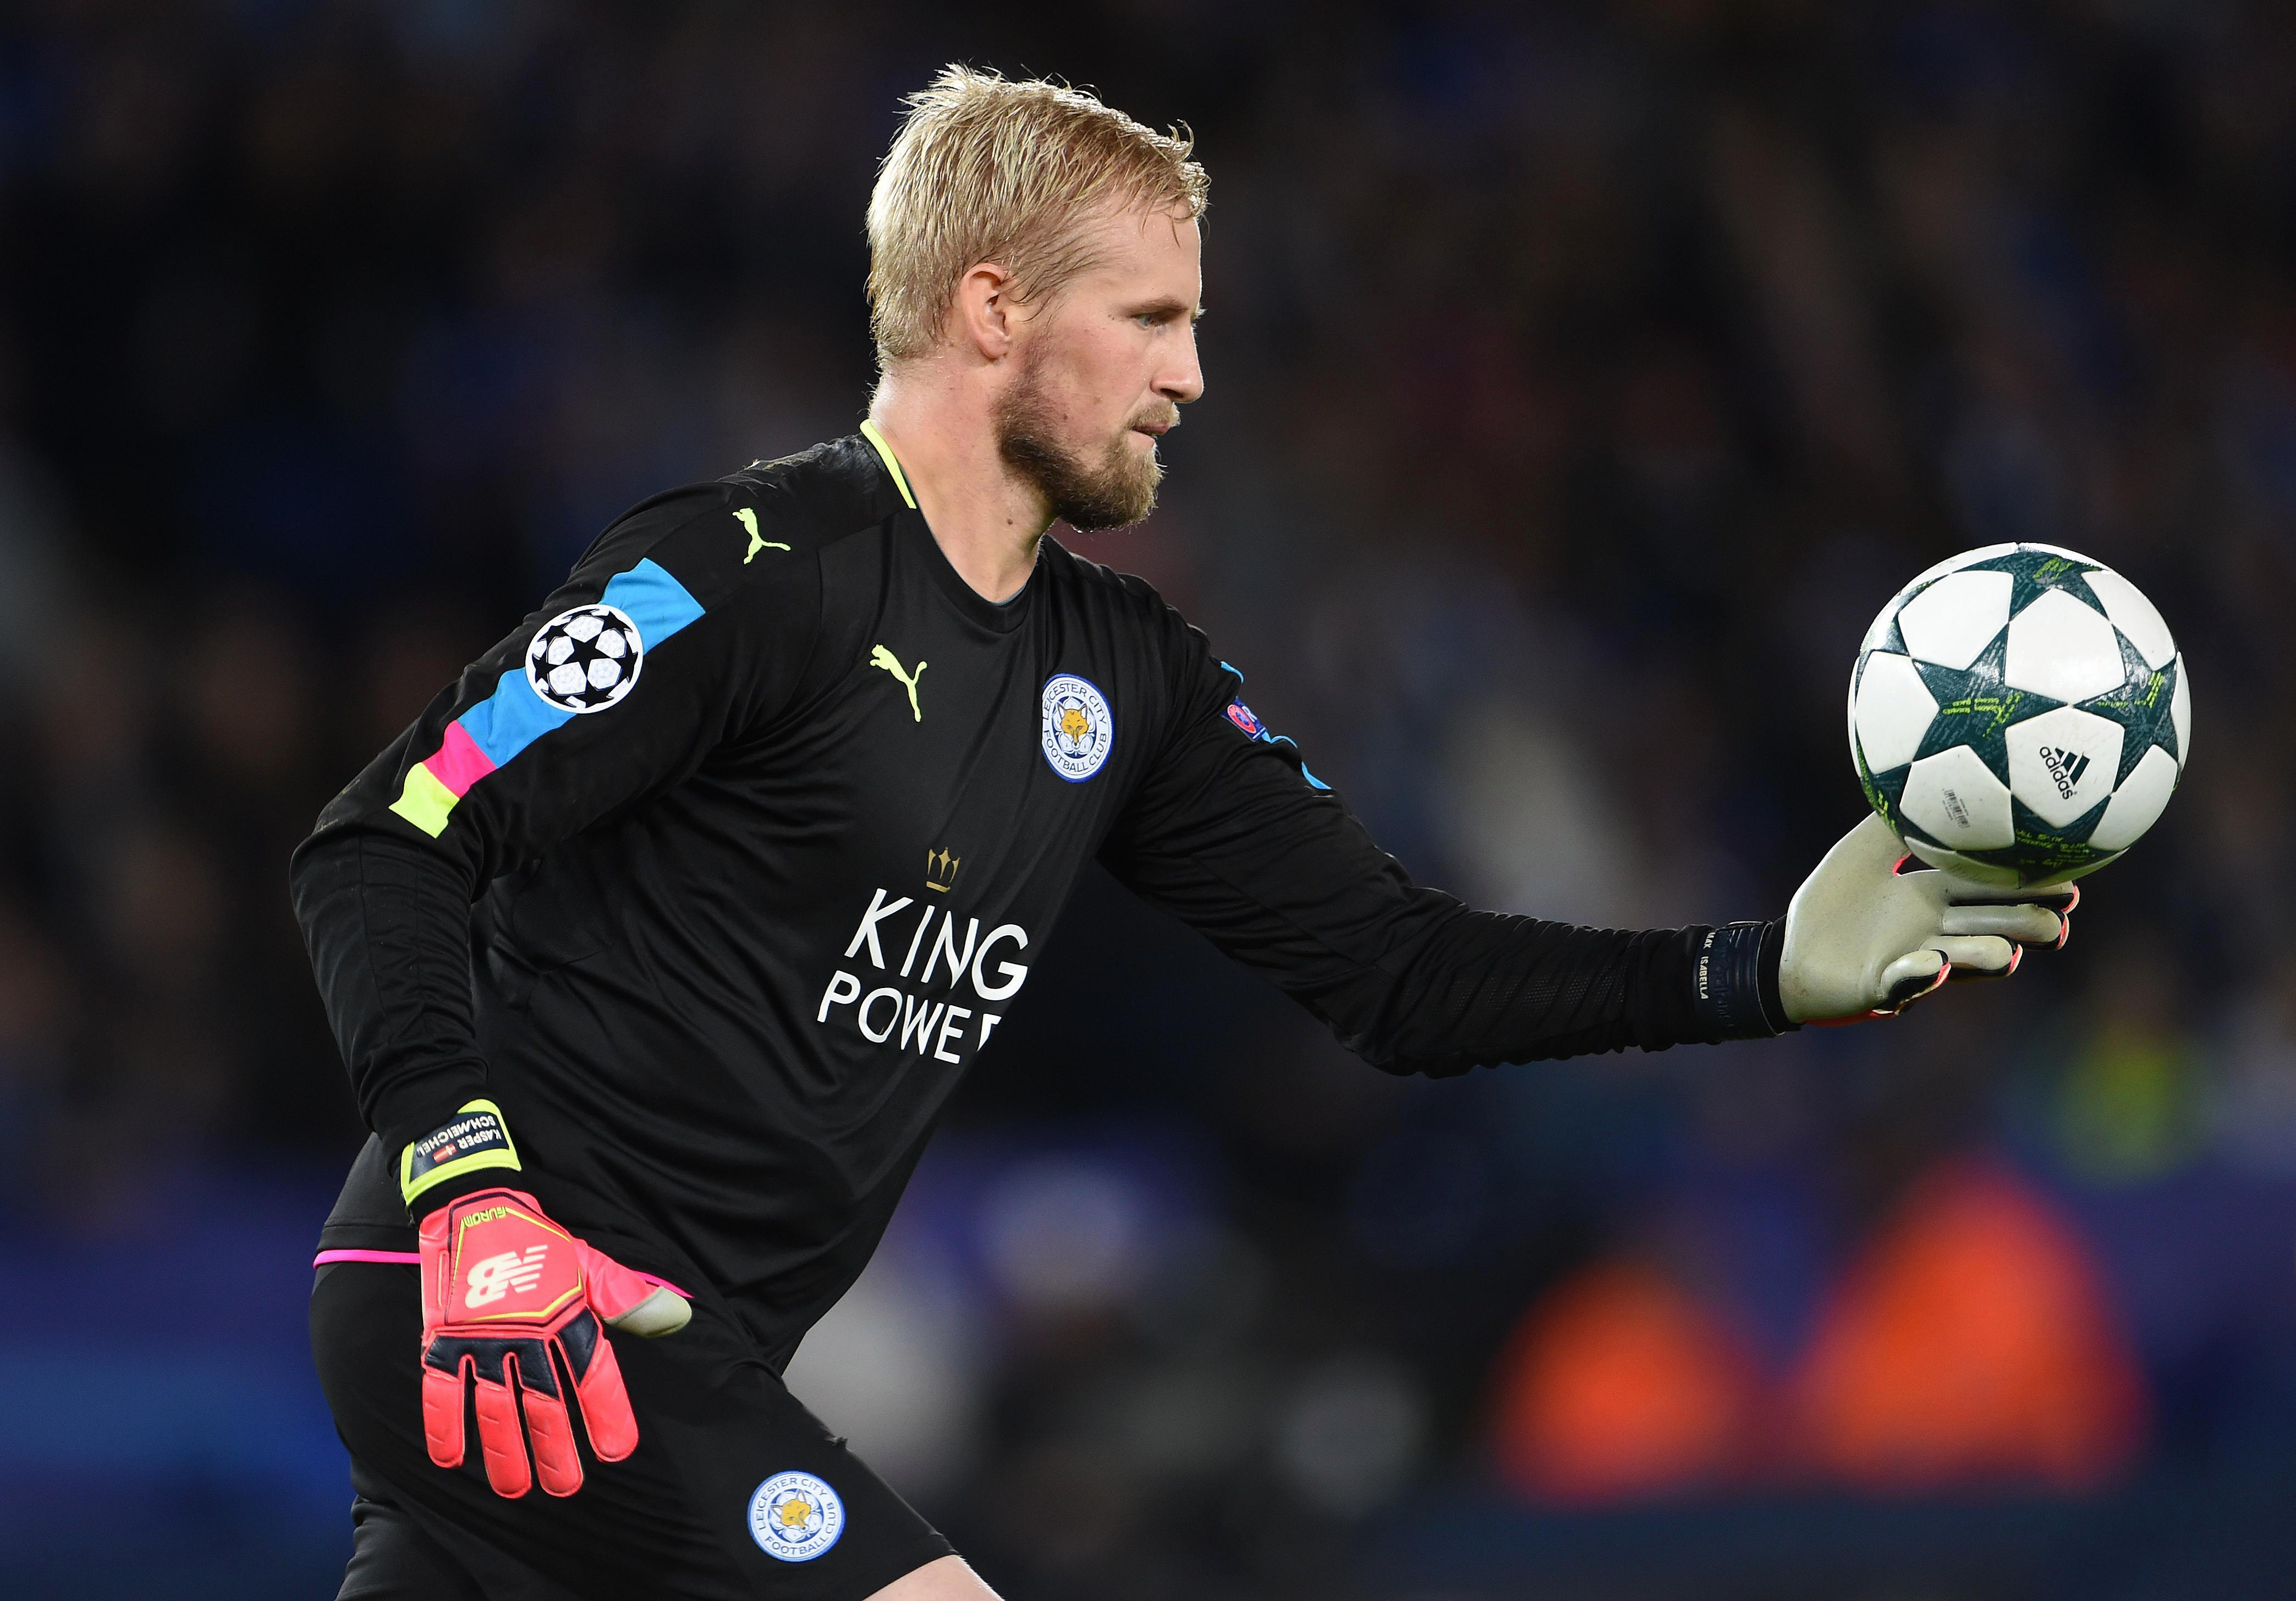 Kasper Schmeichel was exceptional for Leicester in the Champions League